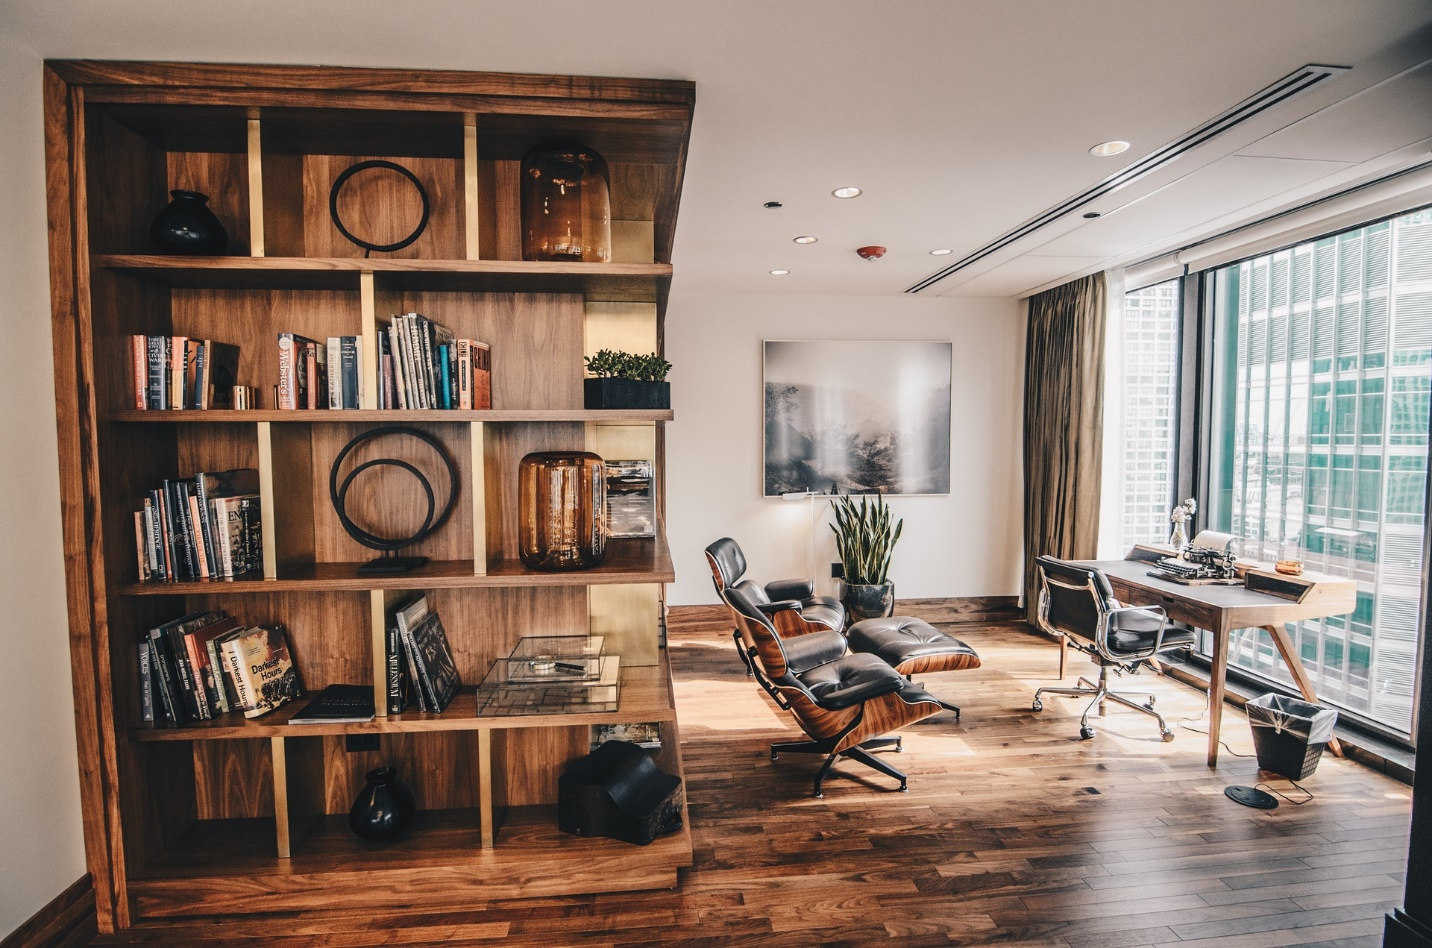 Work in Style from Home with Solid Wood Furniture